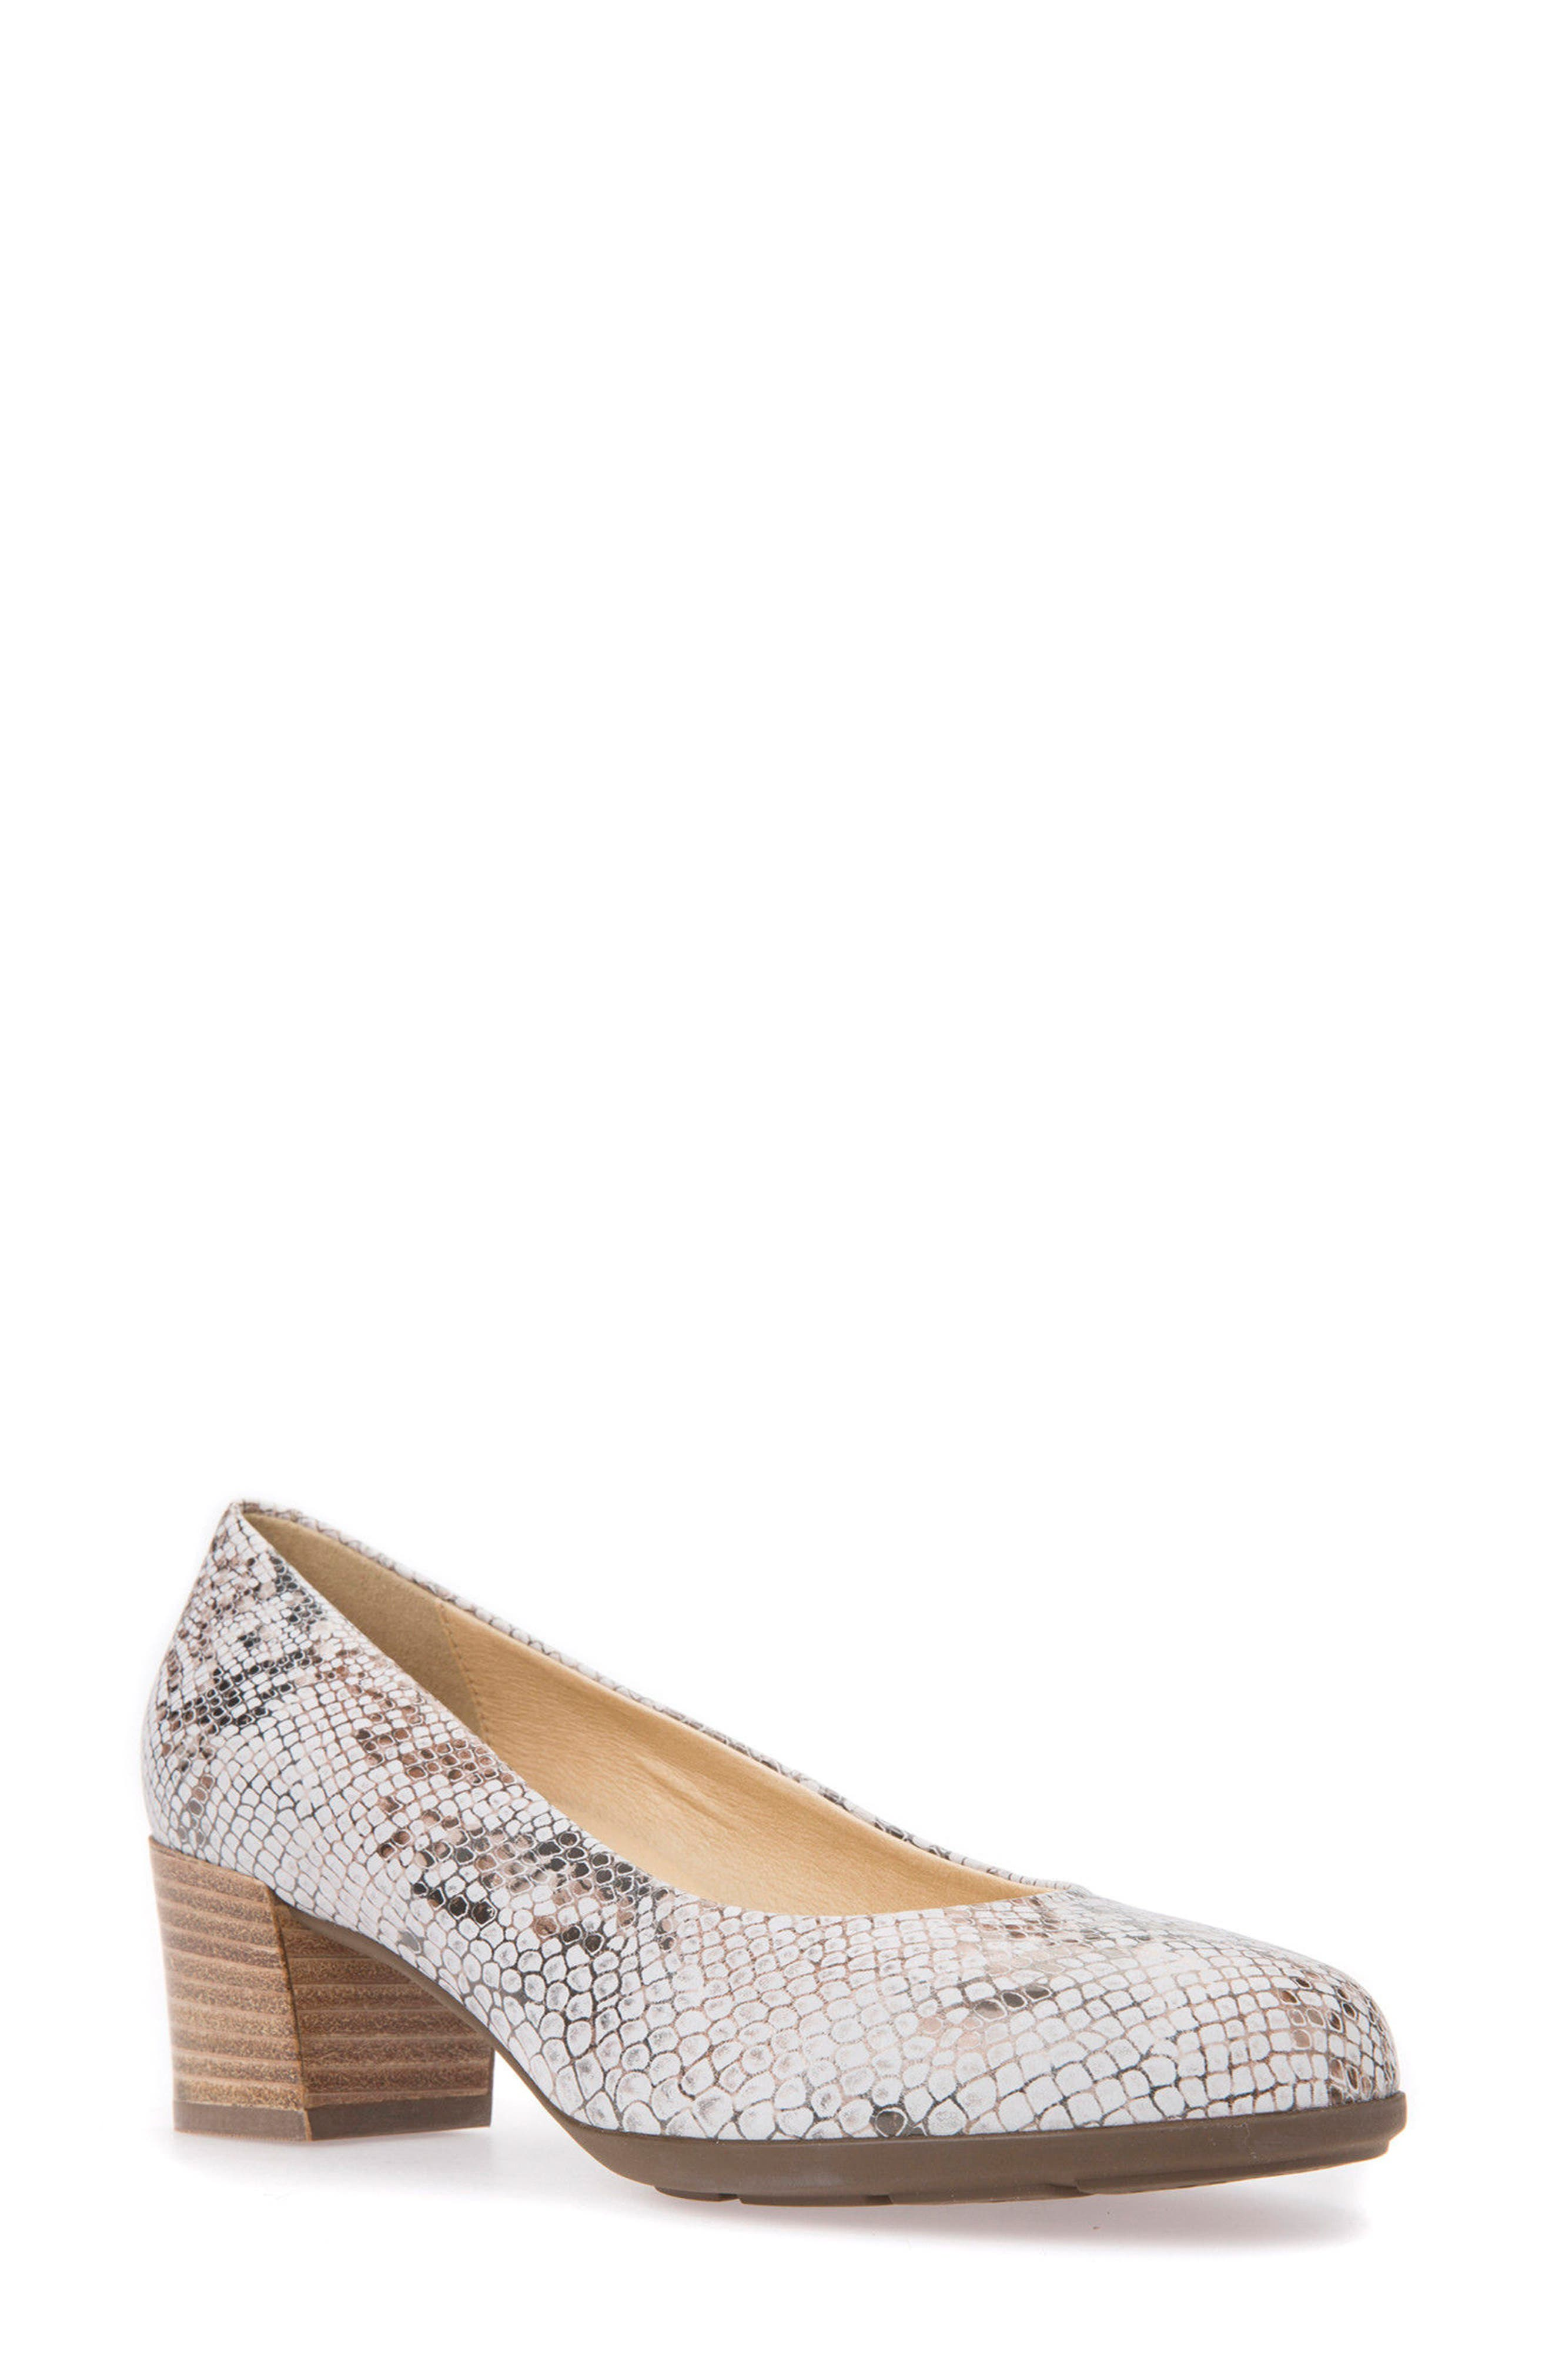 GEOX Annya Pump, Main, color, OFF WHITE SNAKE PRINT